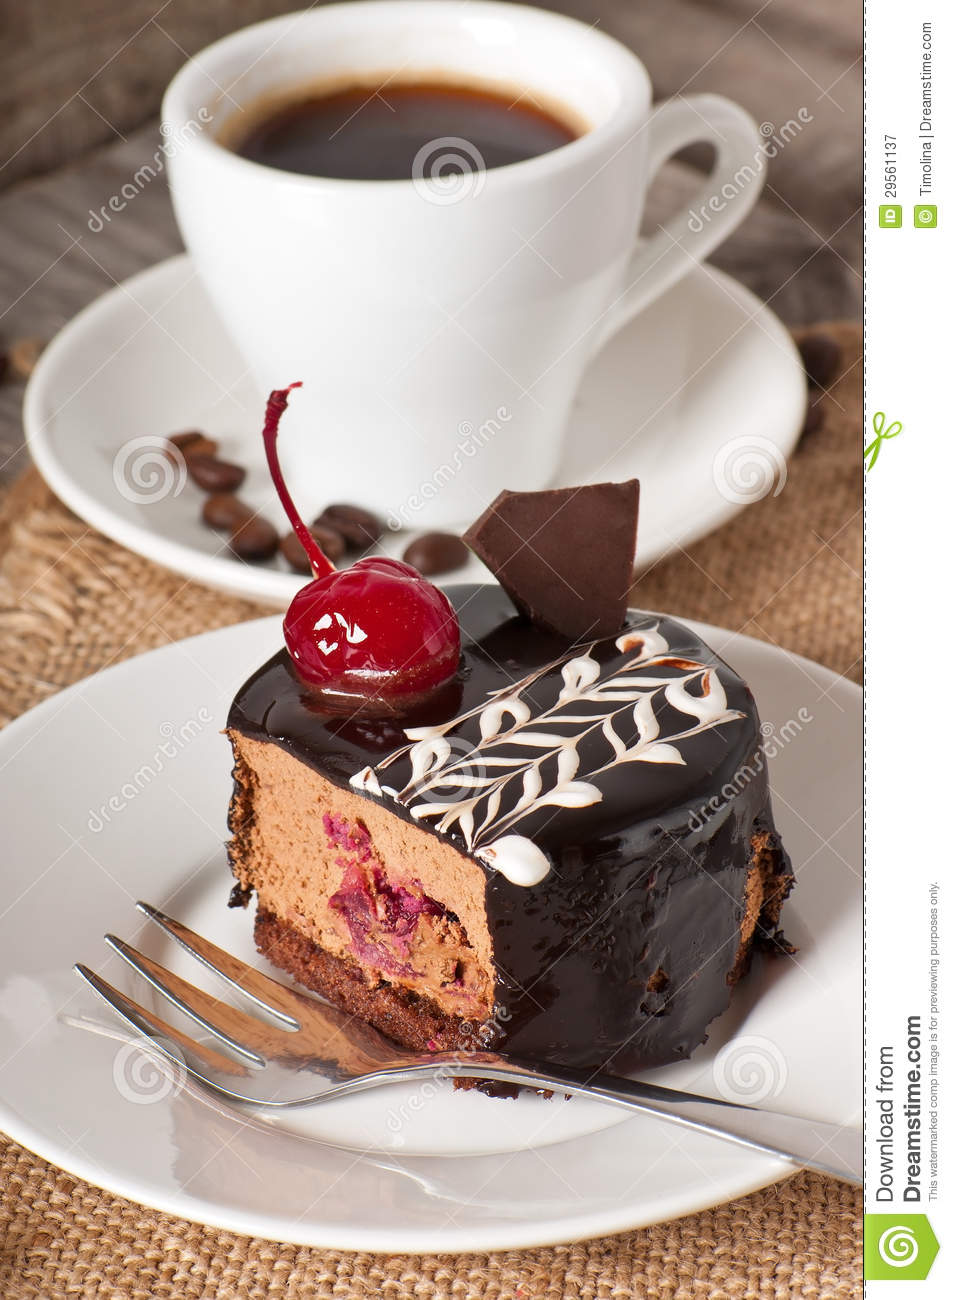 Sweet Dessert And A Cup Of Coffee Stock Image Image Of